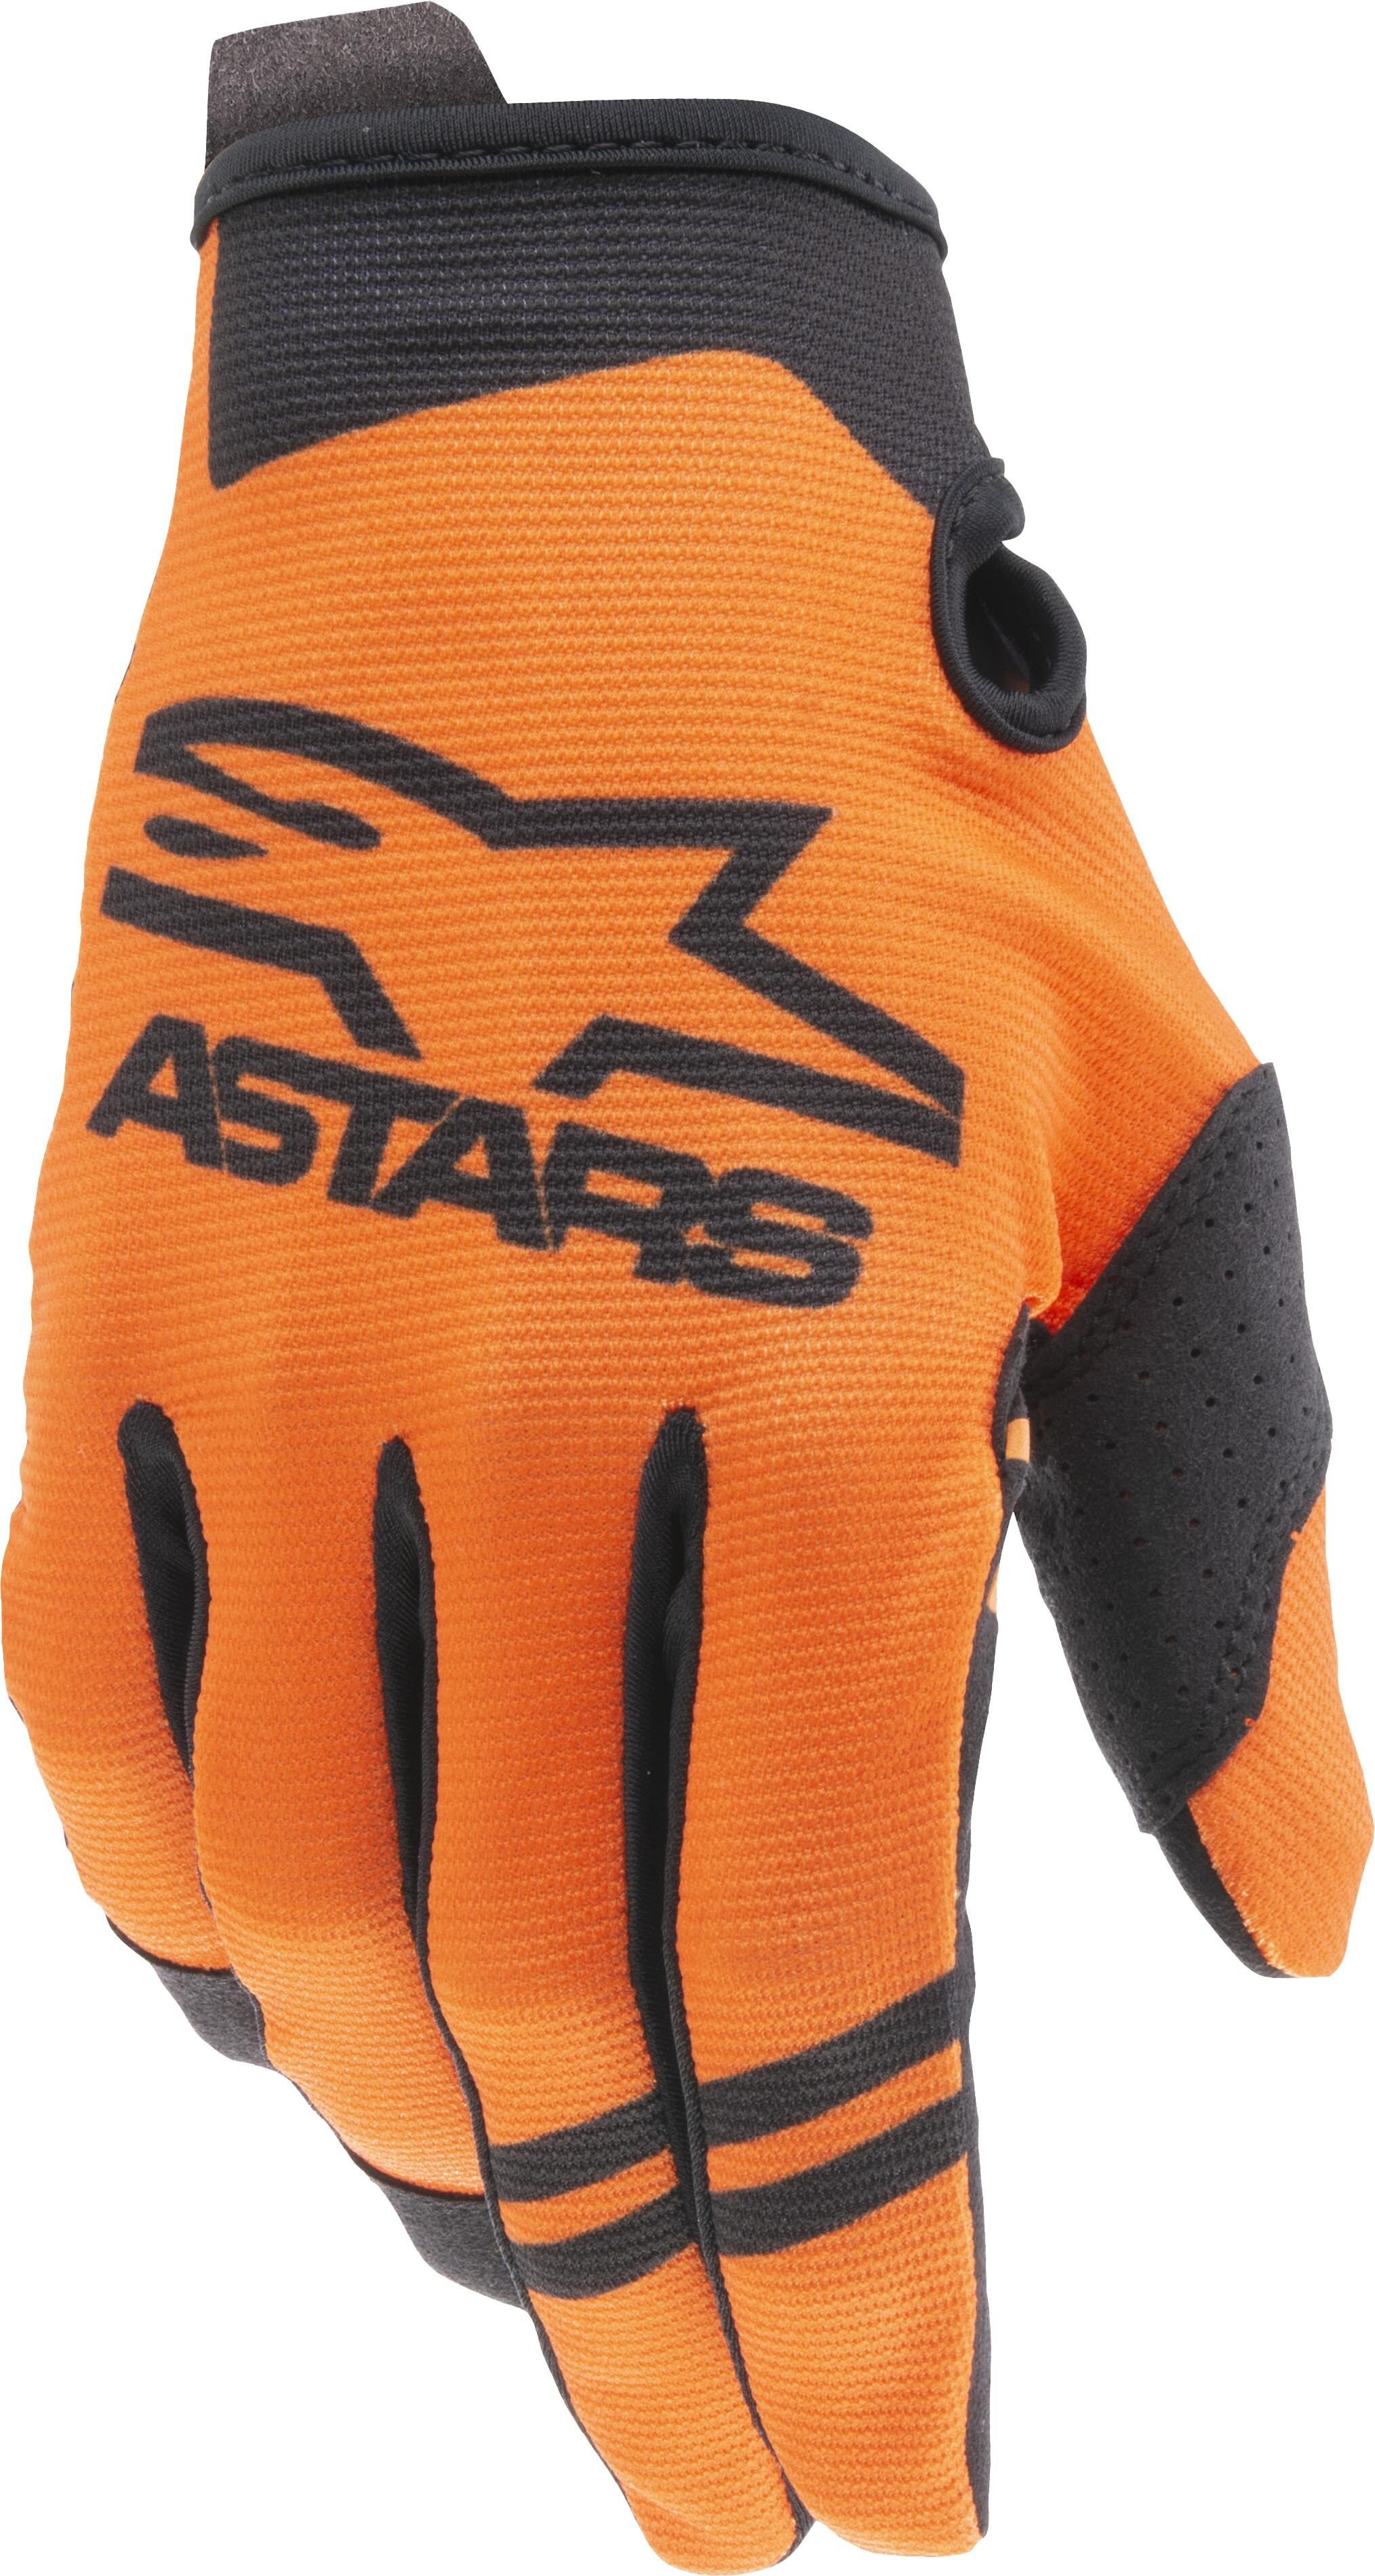 YOUTH RADAR GLOVES ORANGE/ BLACK LG